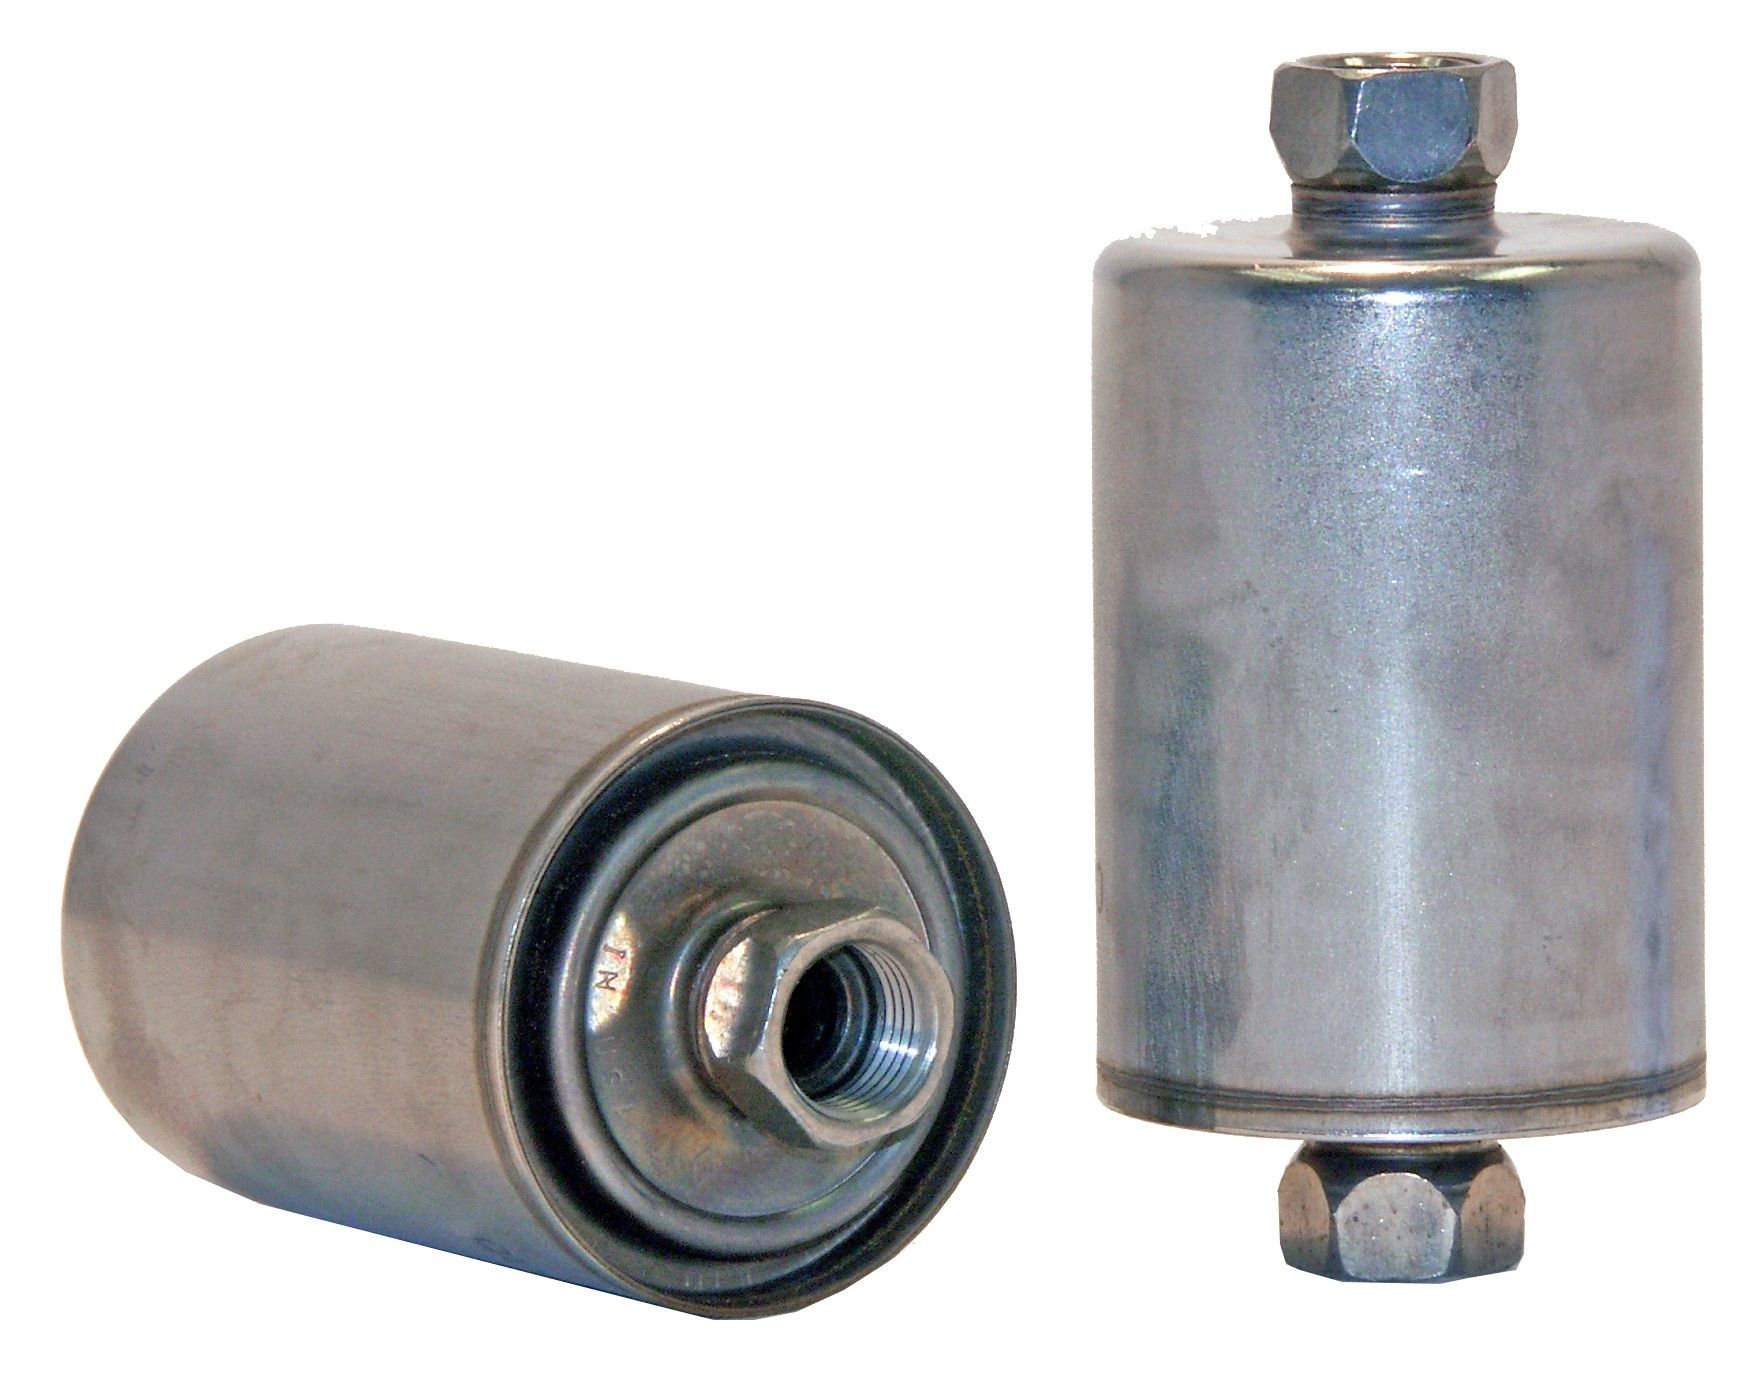 1986 chevrolet caprice fuel filter 6 cyl 4 3l (wix 33481)